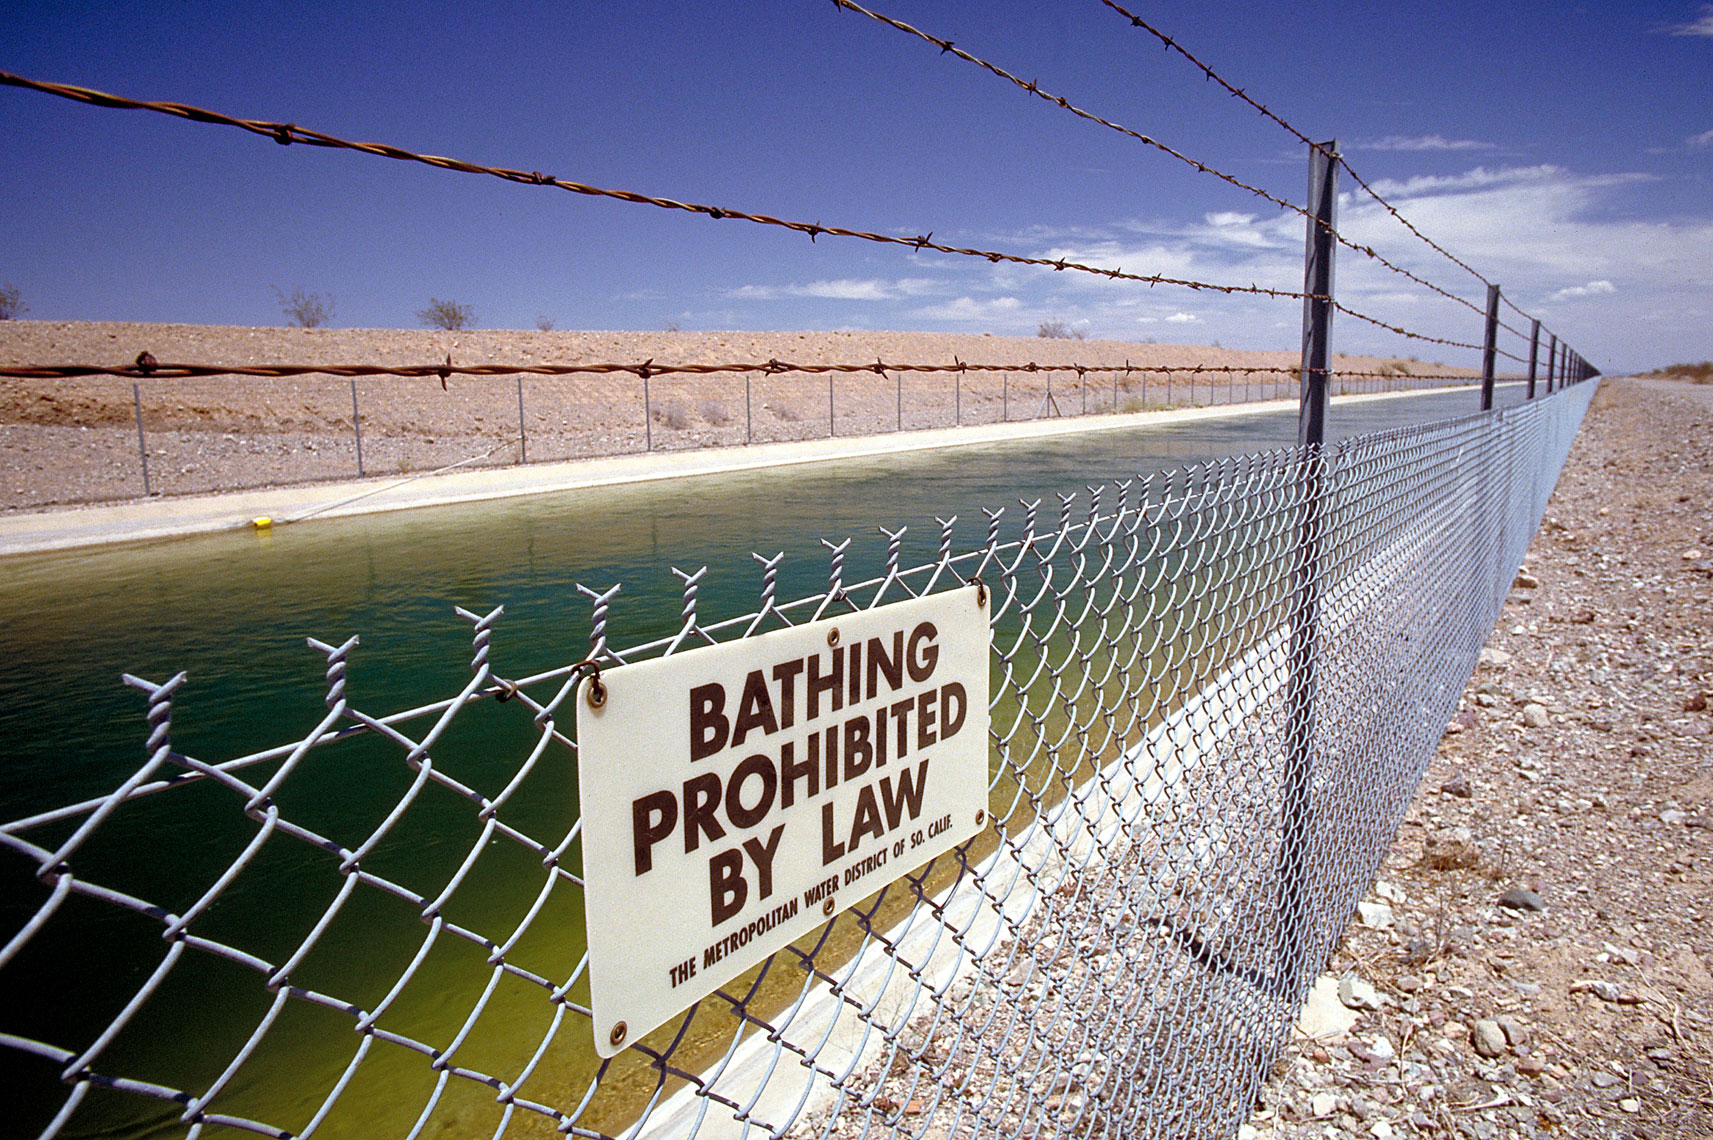 006-005_bathing-prohibited-copy